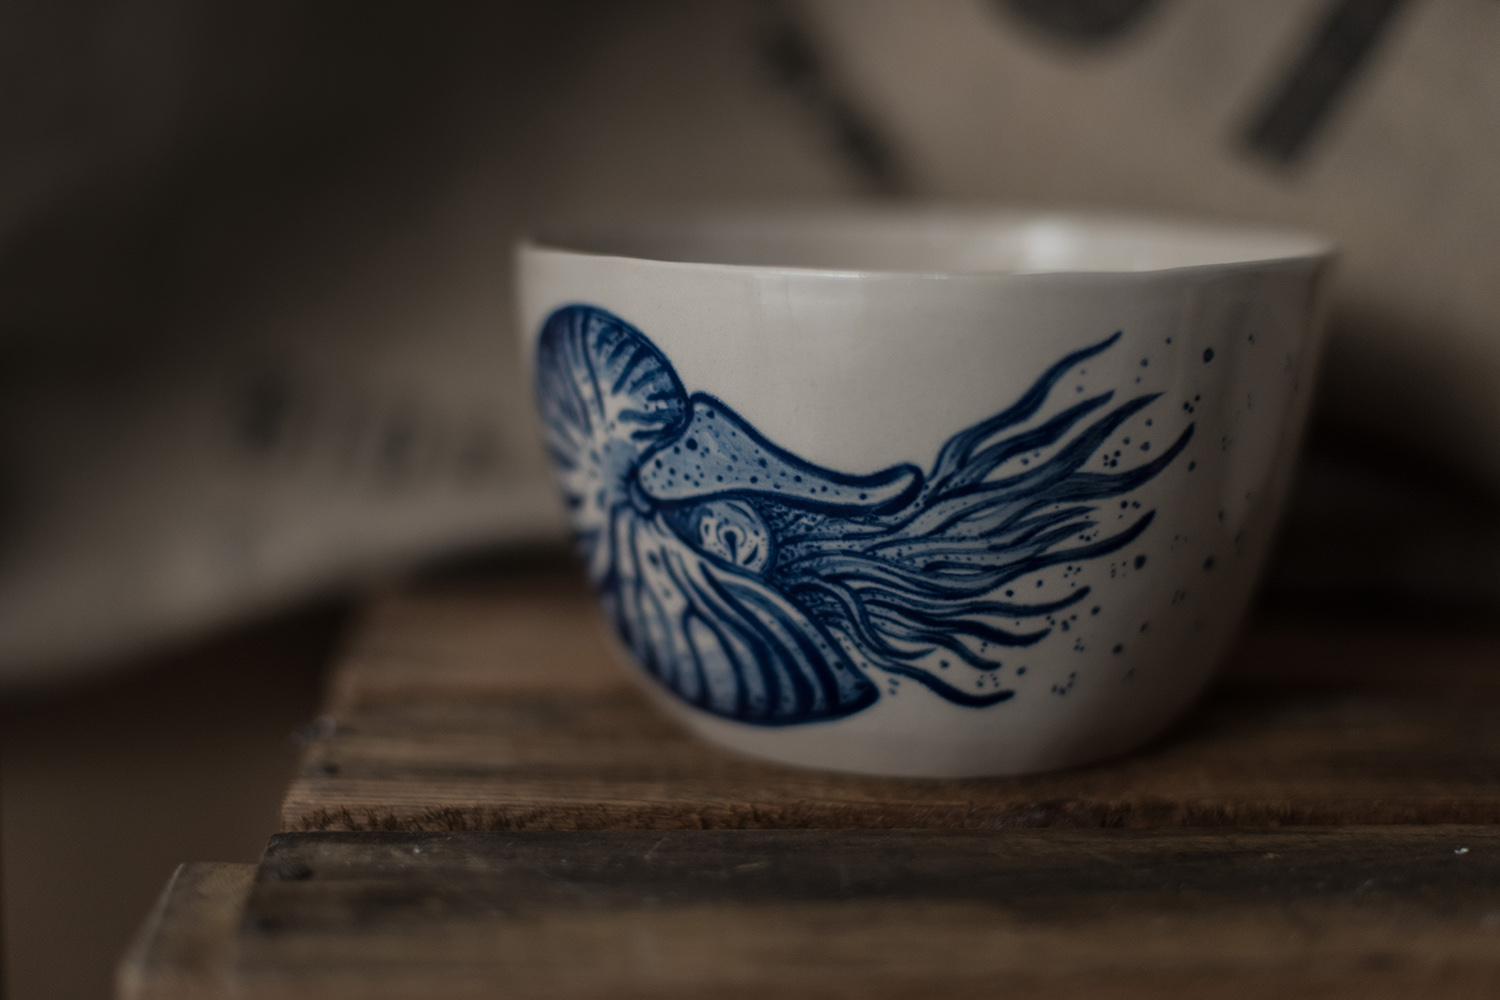 bowl tattoo ceramic blue nautilus fish porcelain handmade hand painted Berlin Antikapratika.jpg